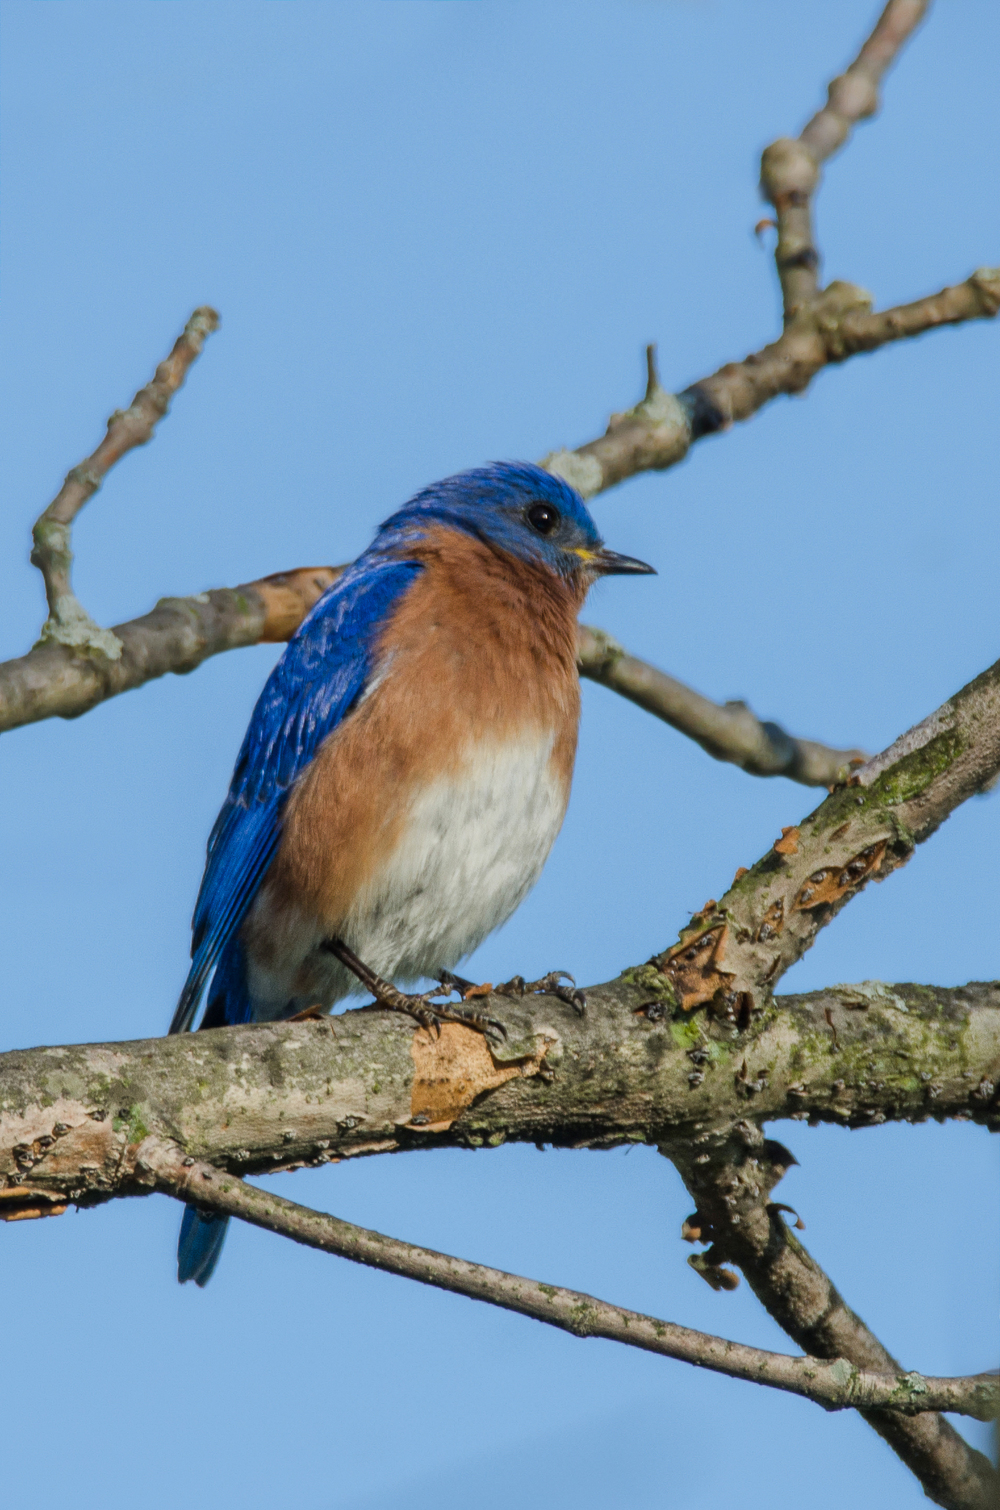 Eastern Bluebird  Nikon D7000 ISO 250 600mm f/10 1/250